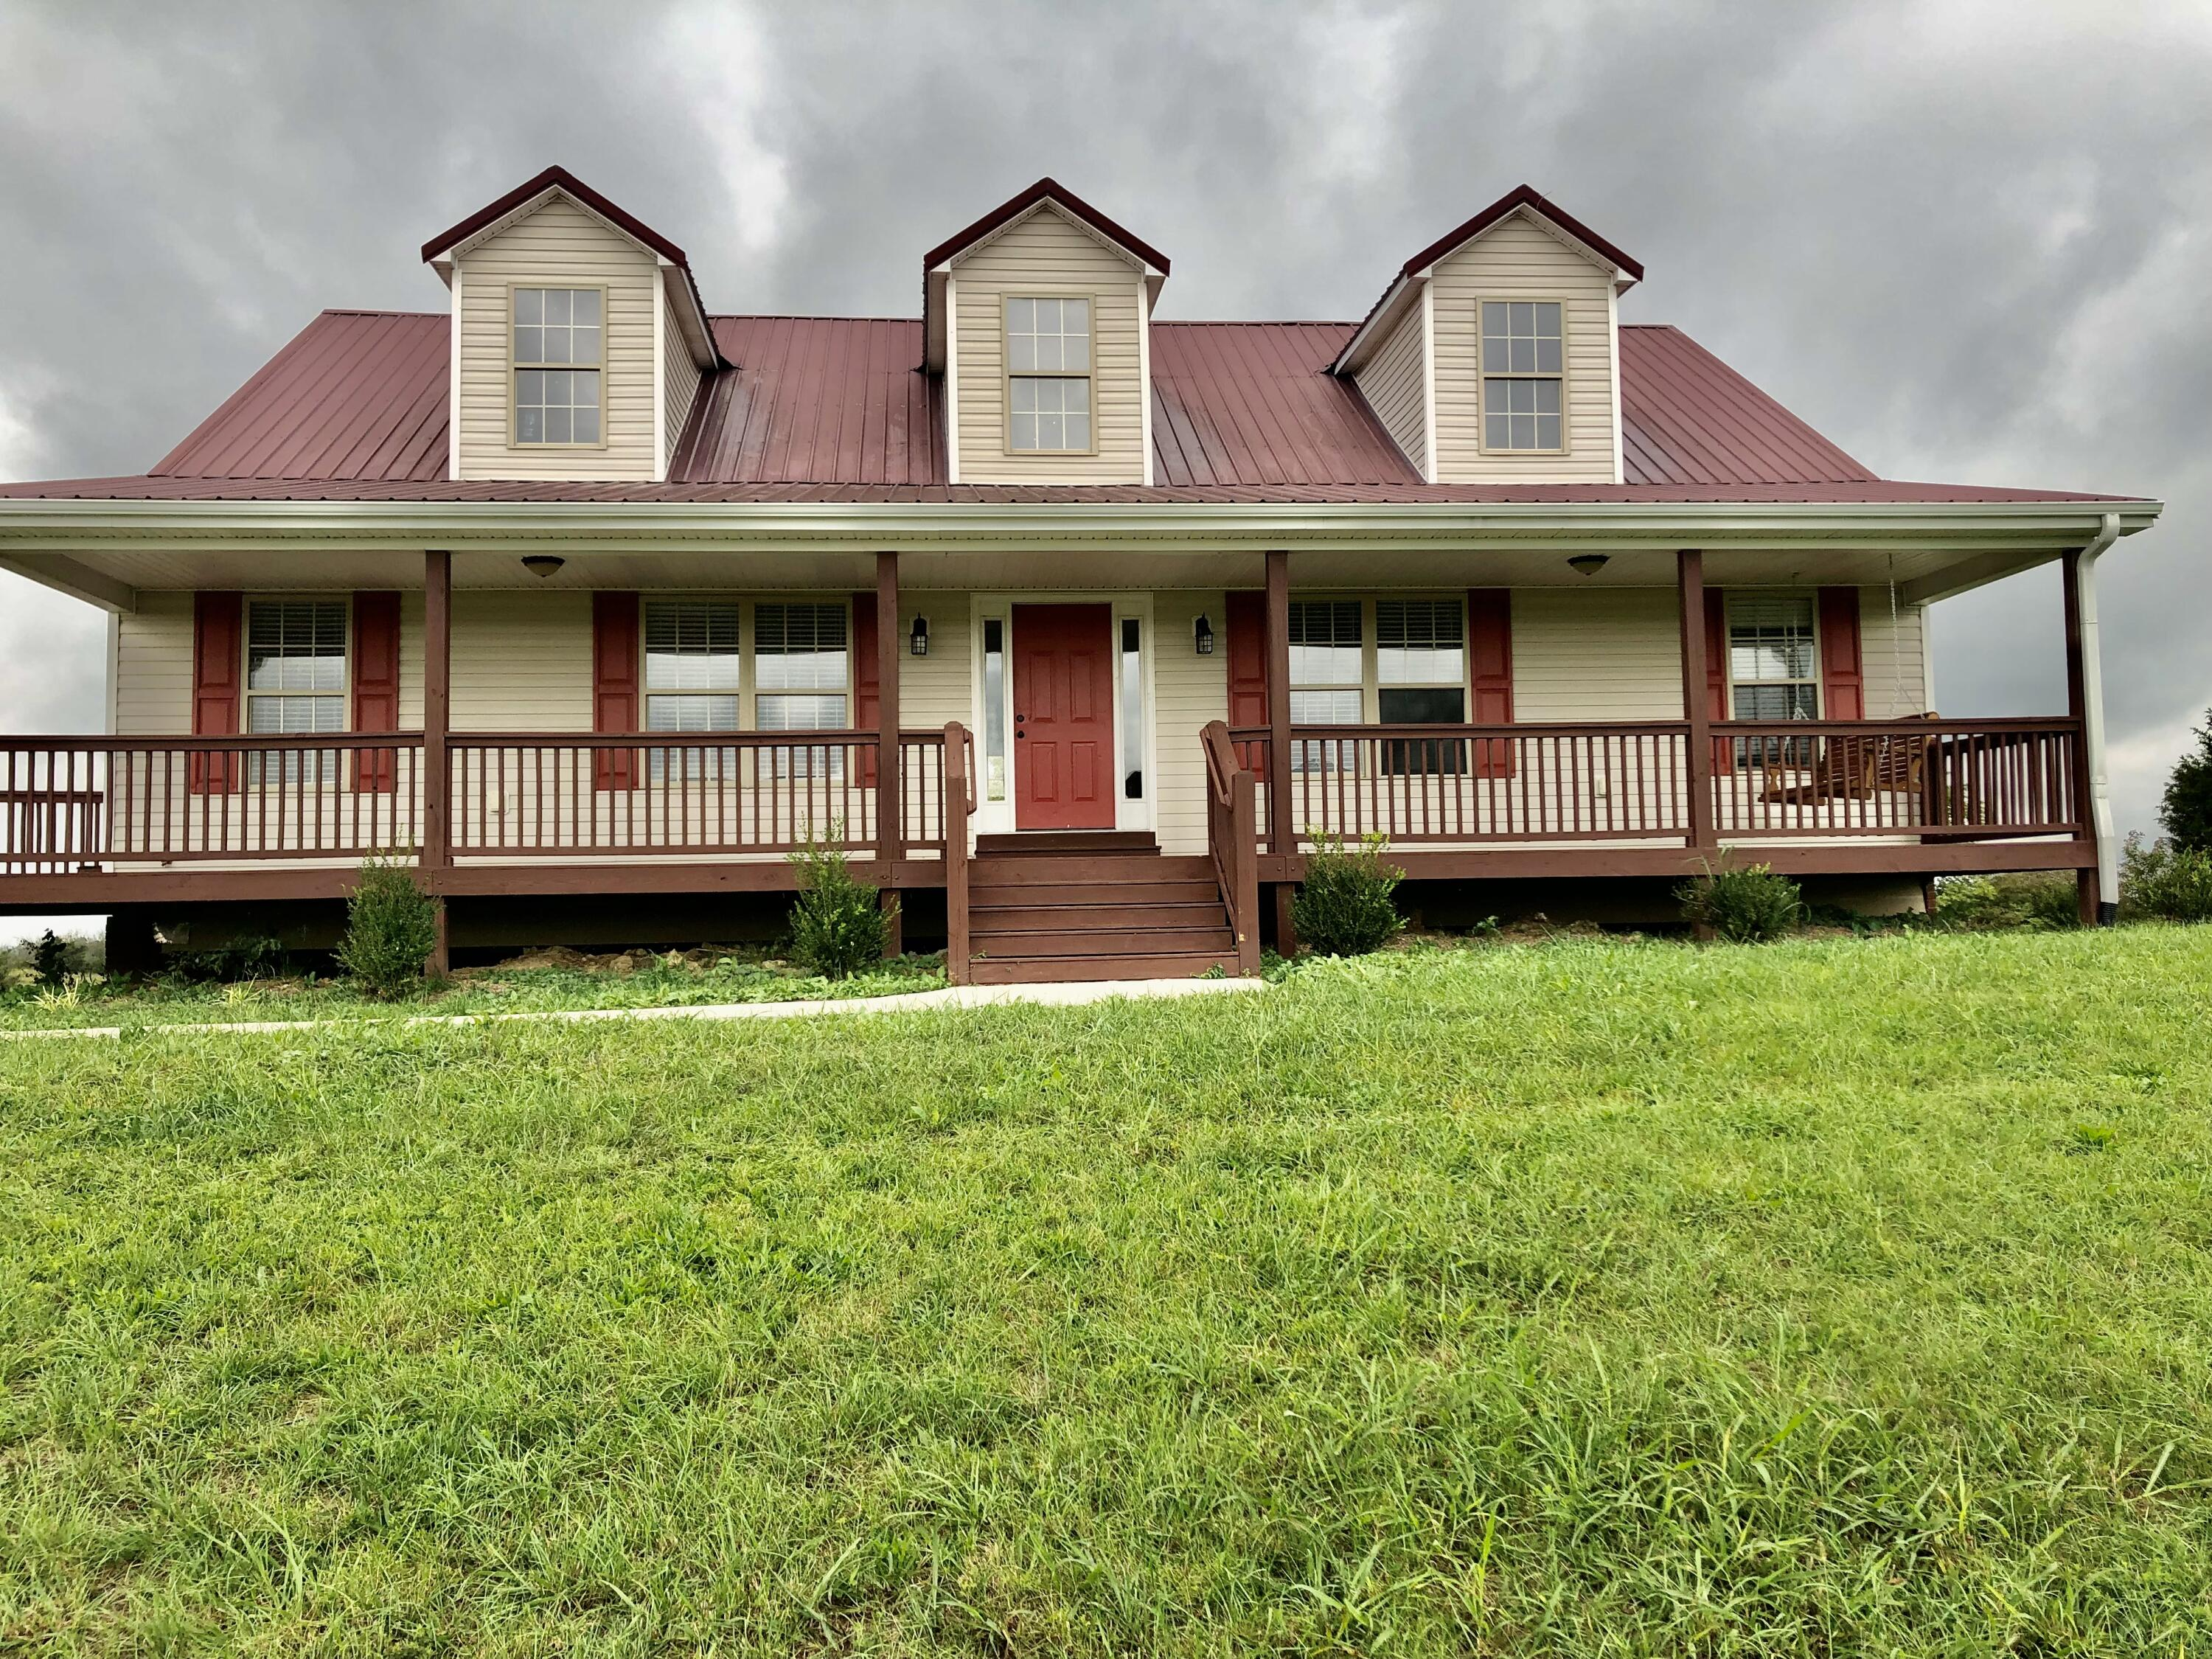 4520 crab orchard rd Road, Stanford, KY 40484